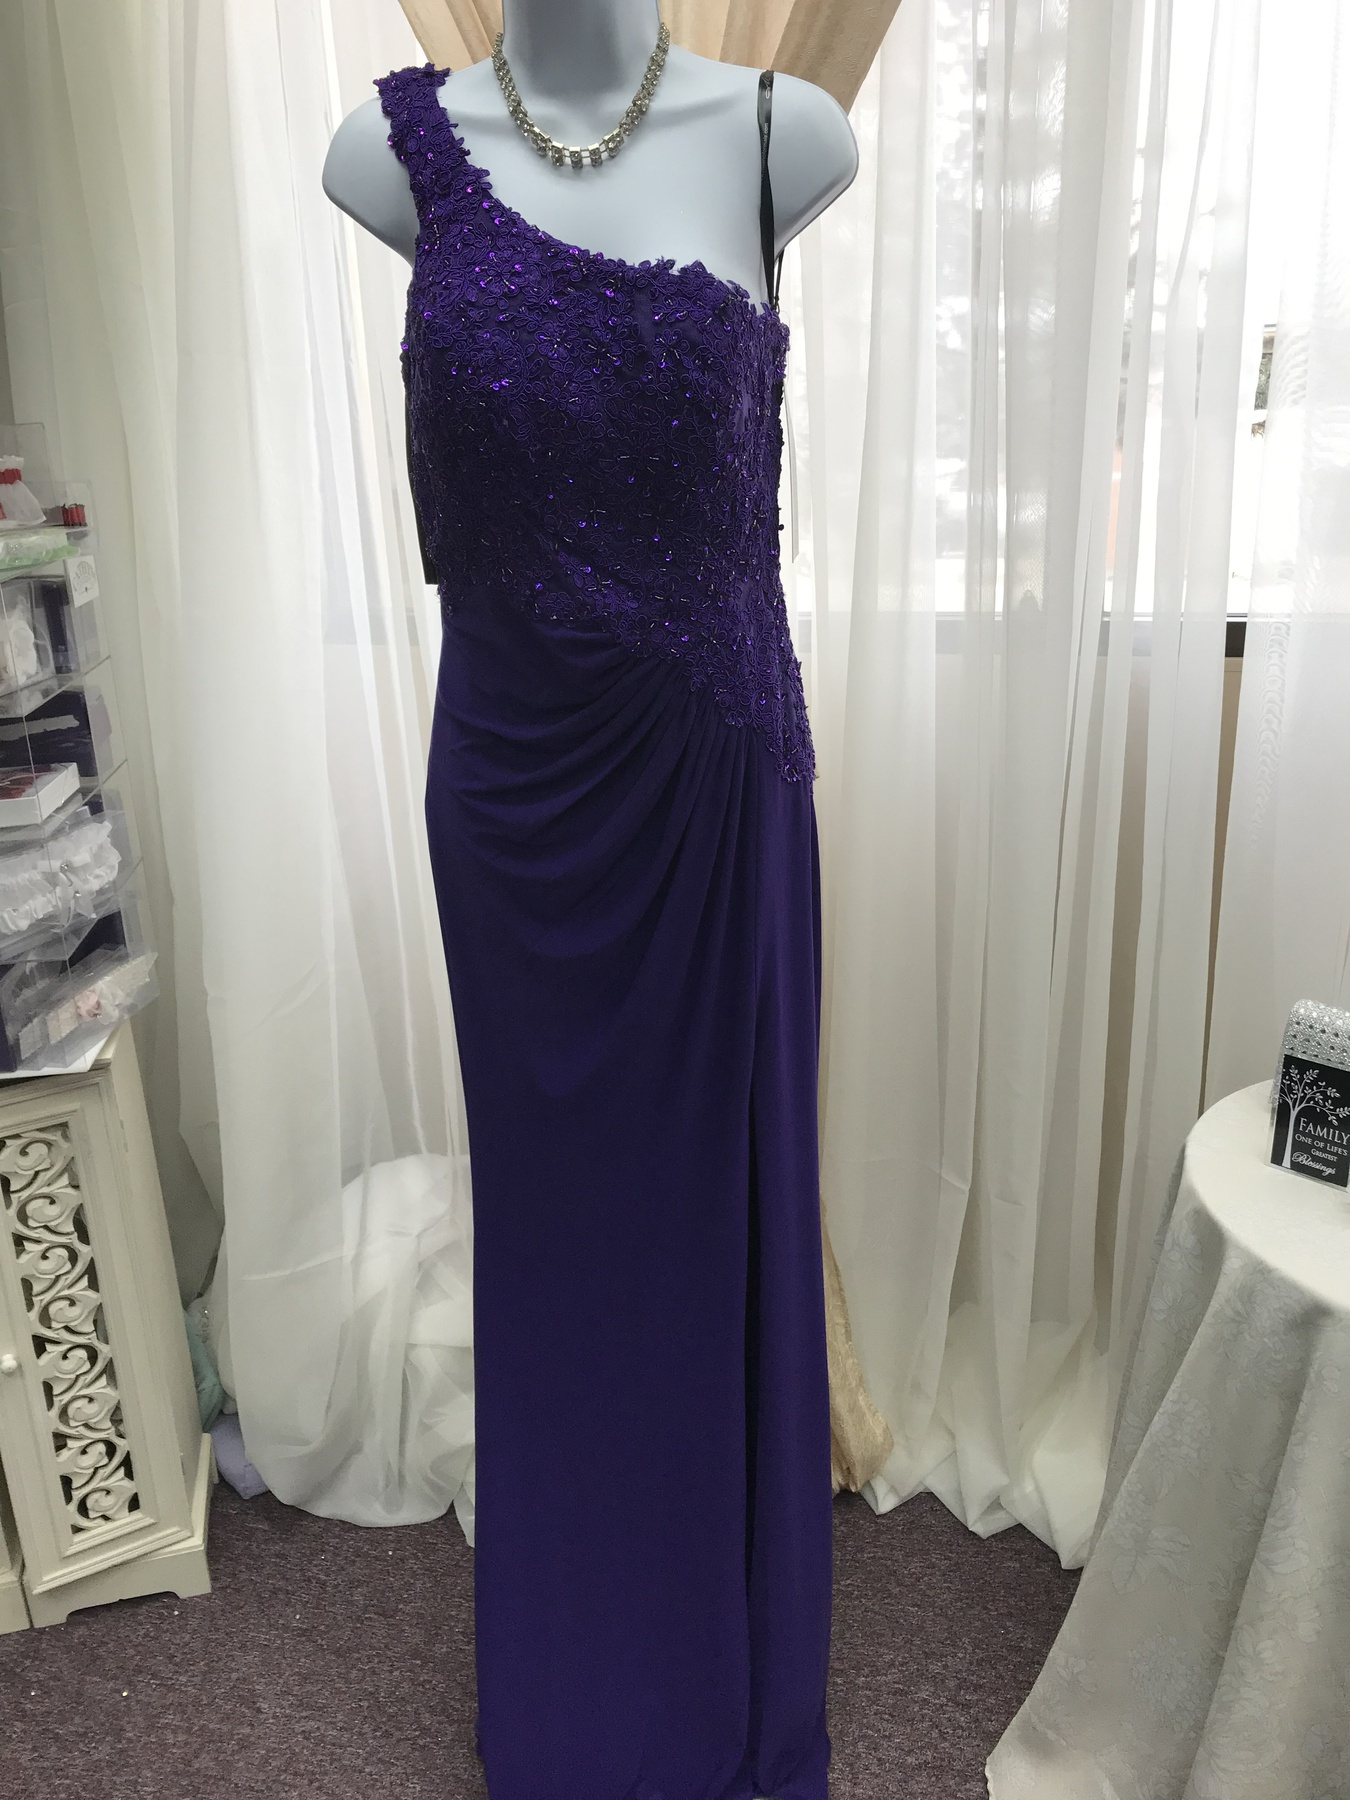 Milano Formals Purple Size 4 One Shoulder Prom Side slit Dress on Queenly